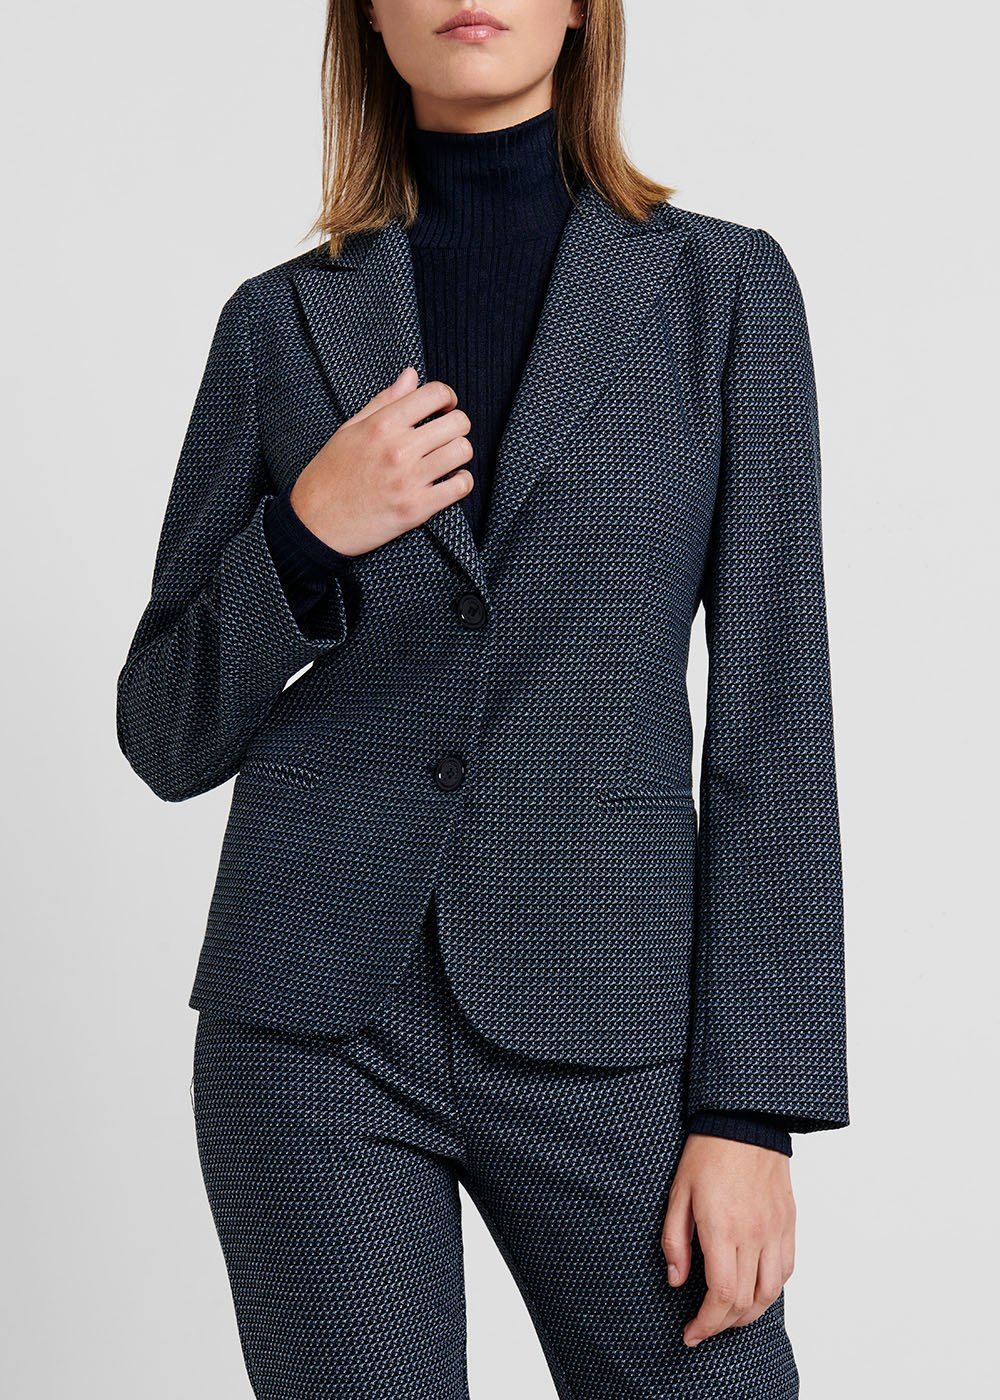 Micro-patterned jacquard jacket